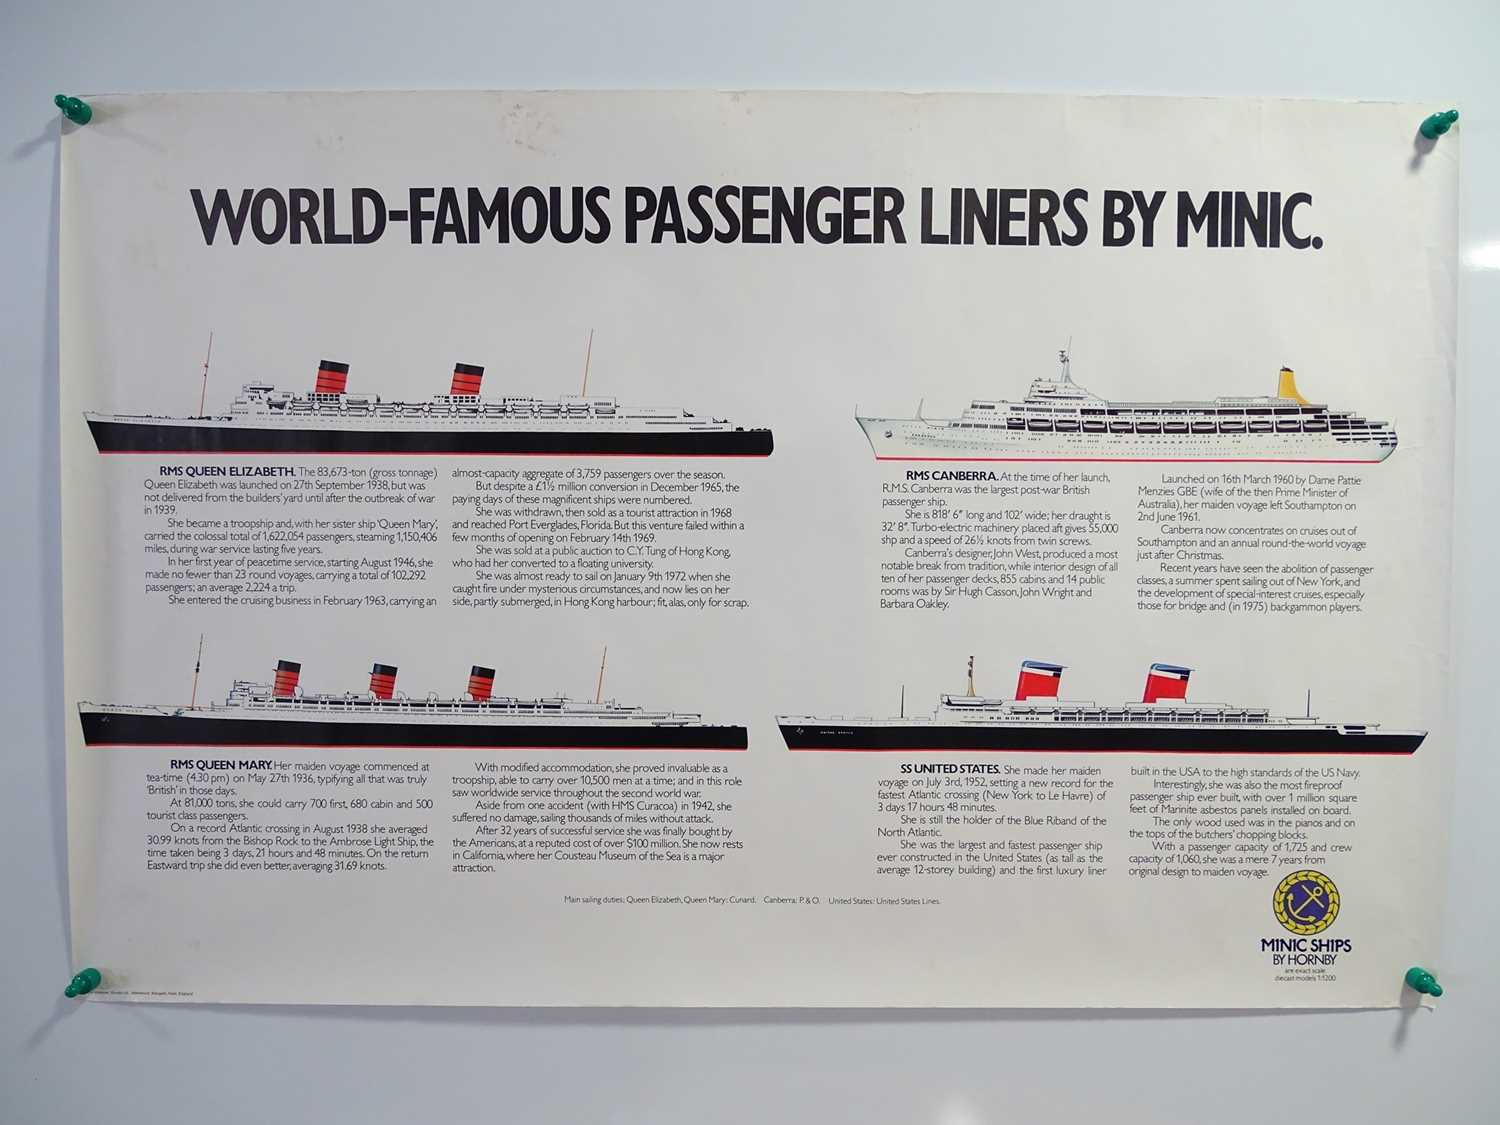 A pair of promotional posters for HORNBY MINIC SHIPS comprising 'World Famous Passenger Liners'